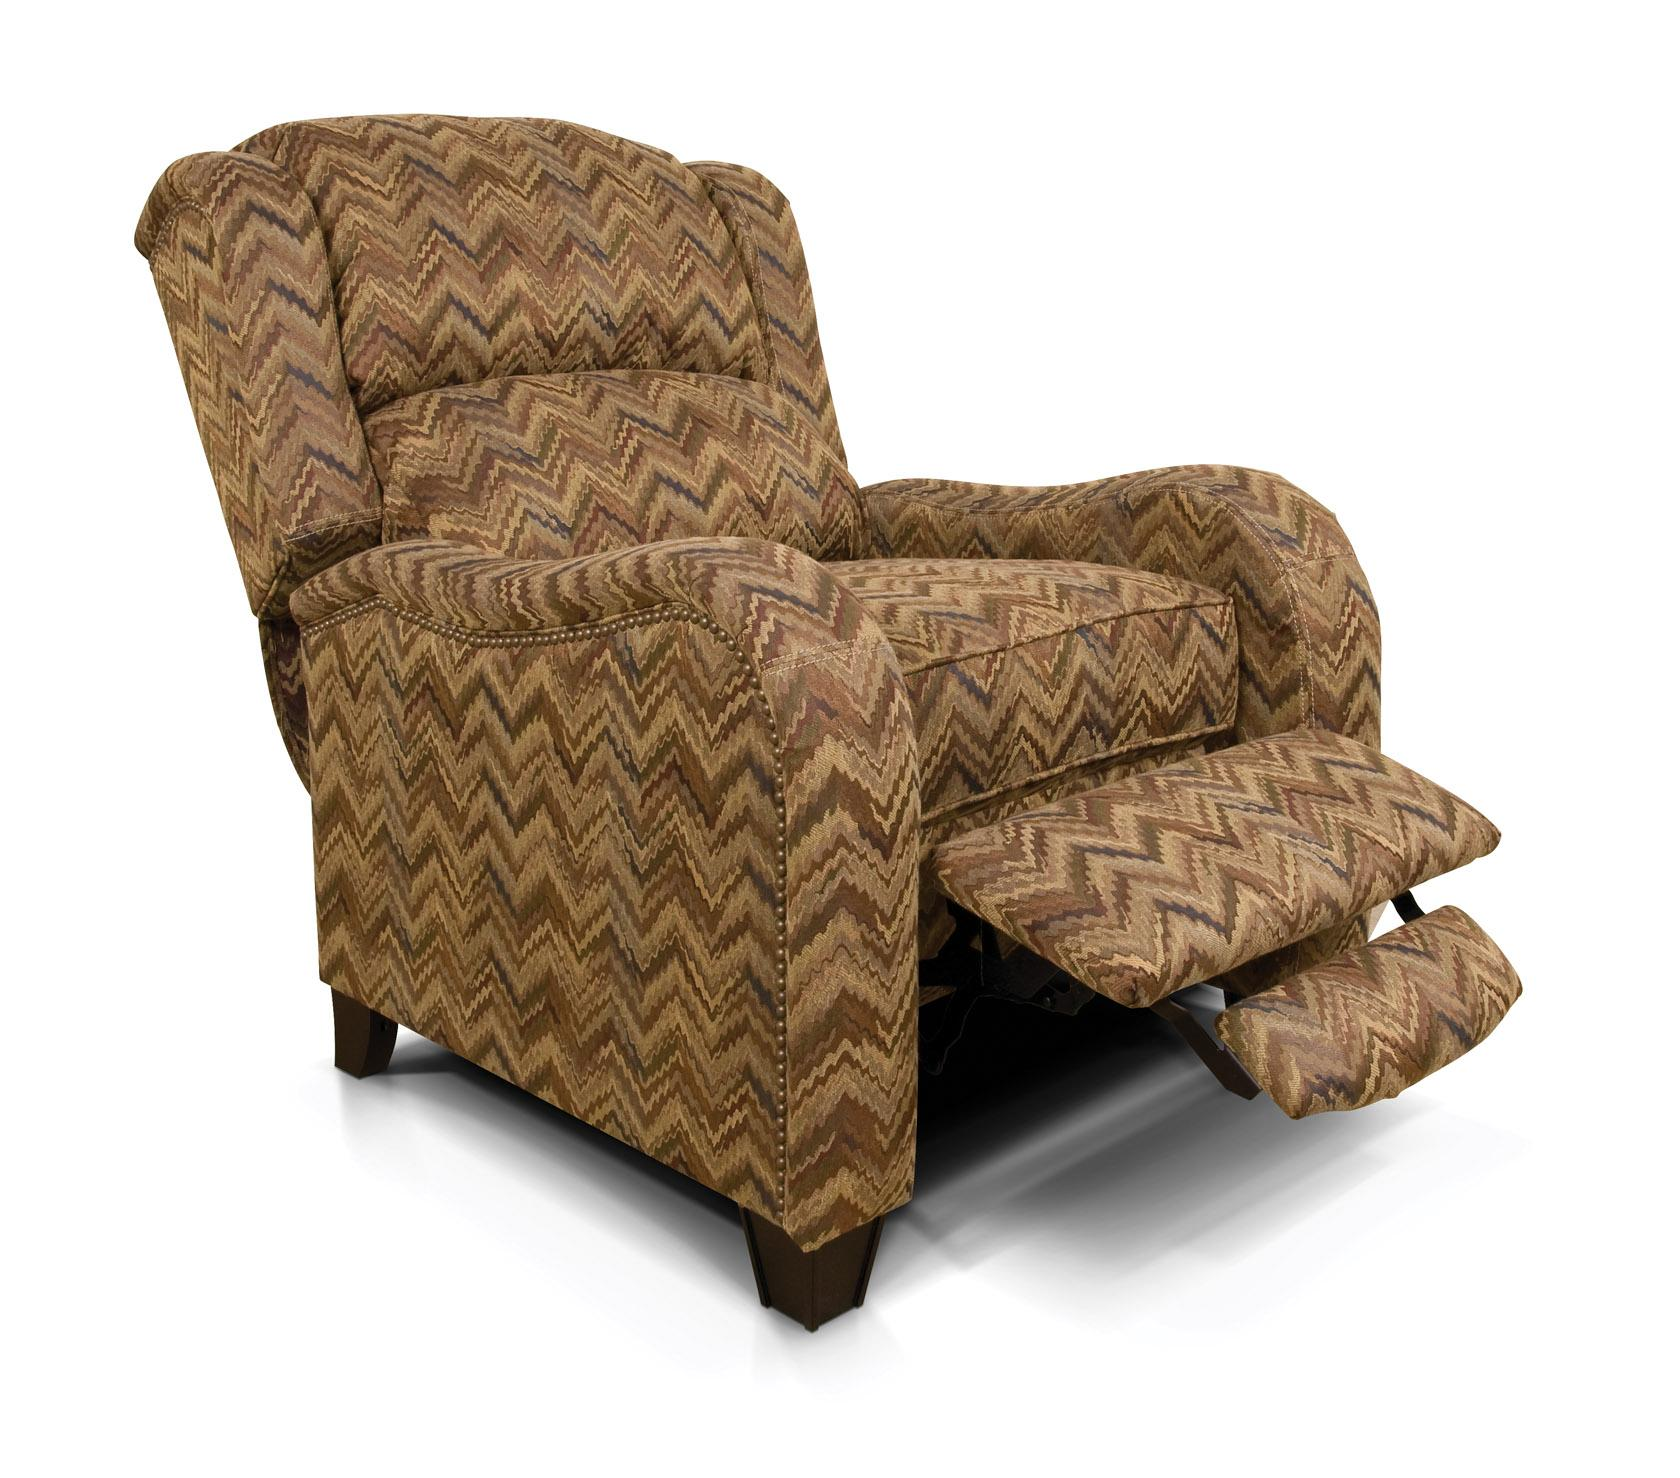 leather club chairs nebraska furniture mart chair covers los angeles england carolynne 193031r reclining and